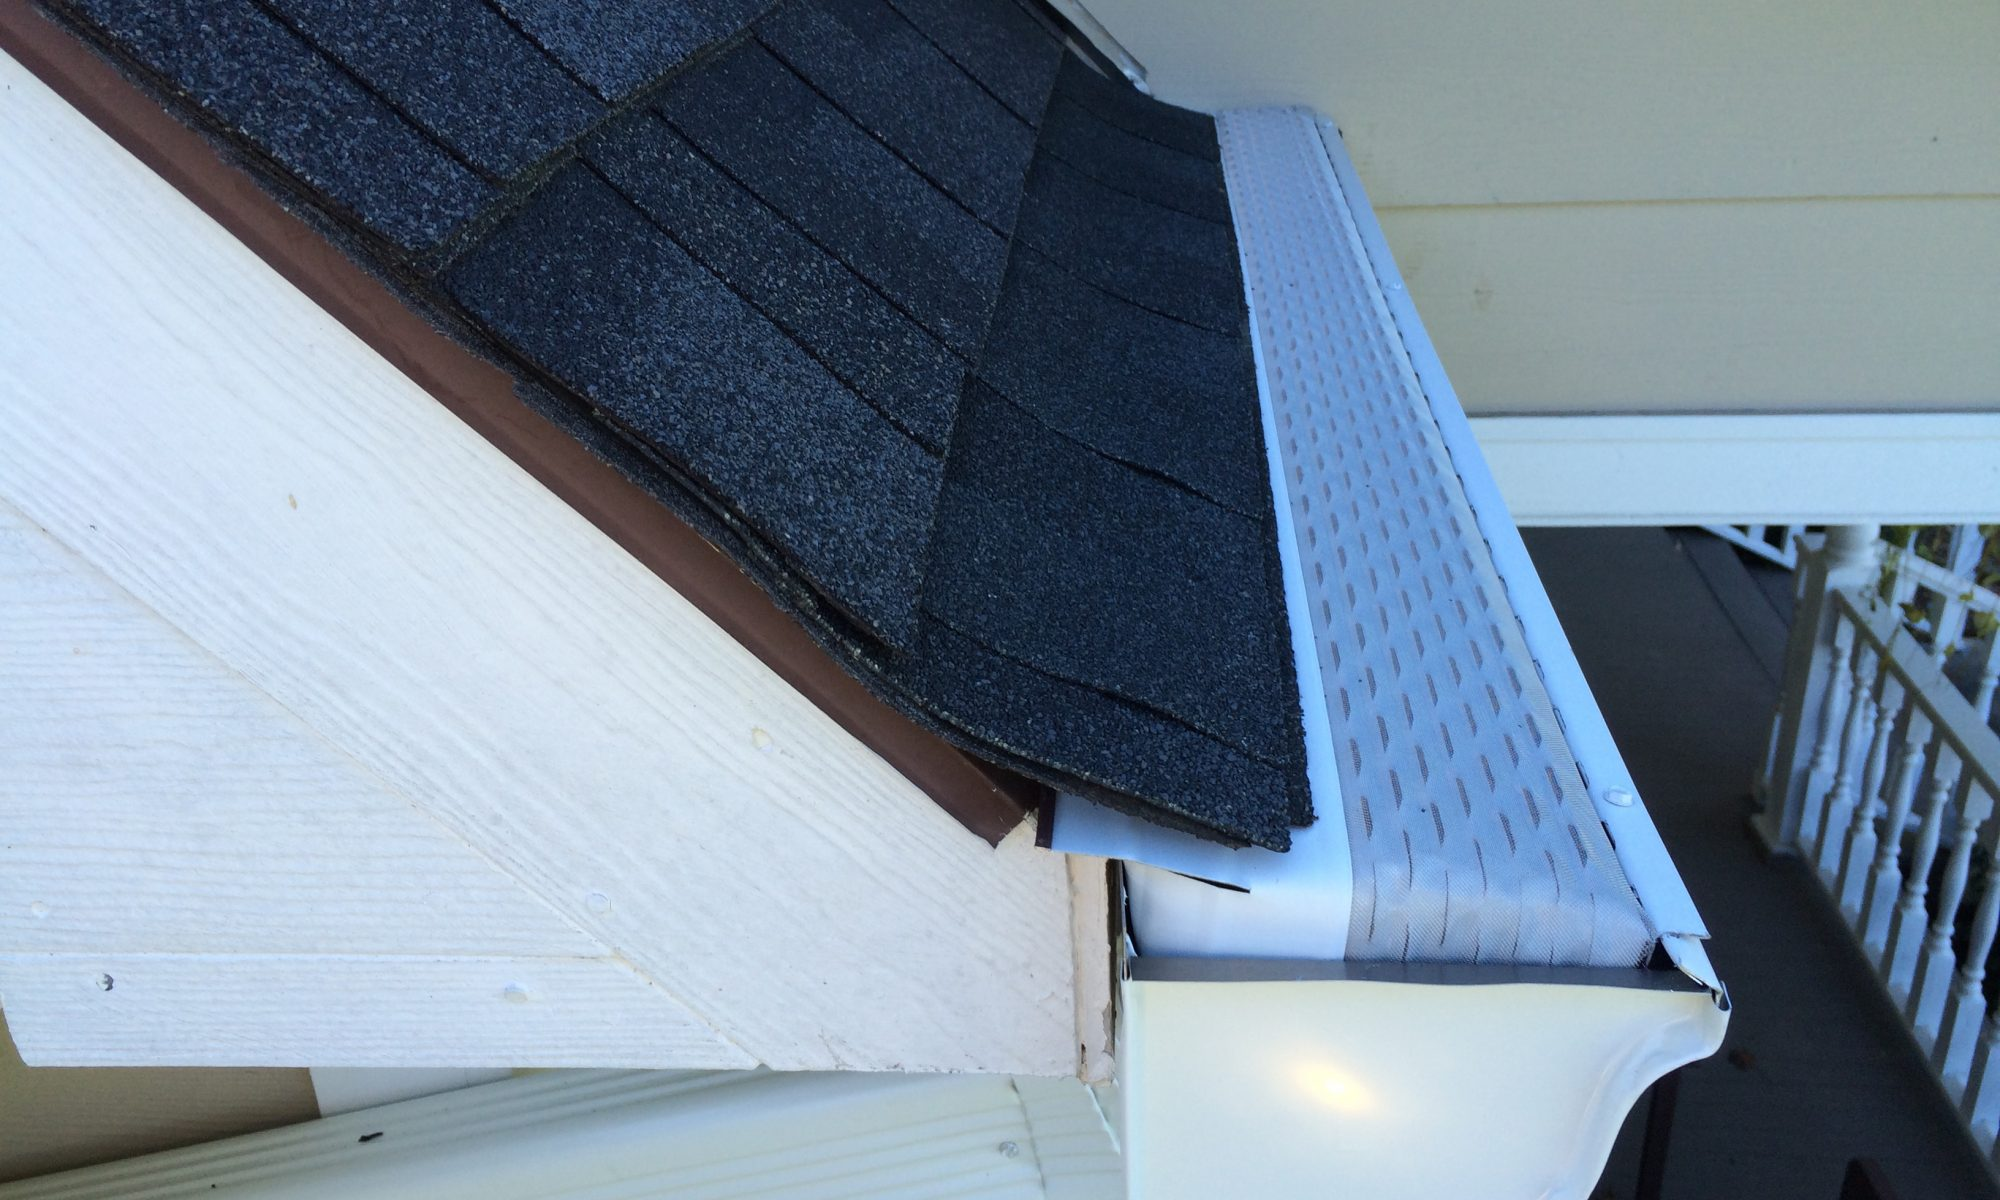 microscreen u.s. gutter guard side angle